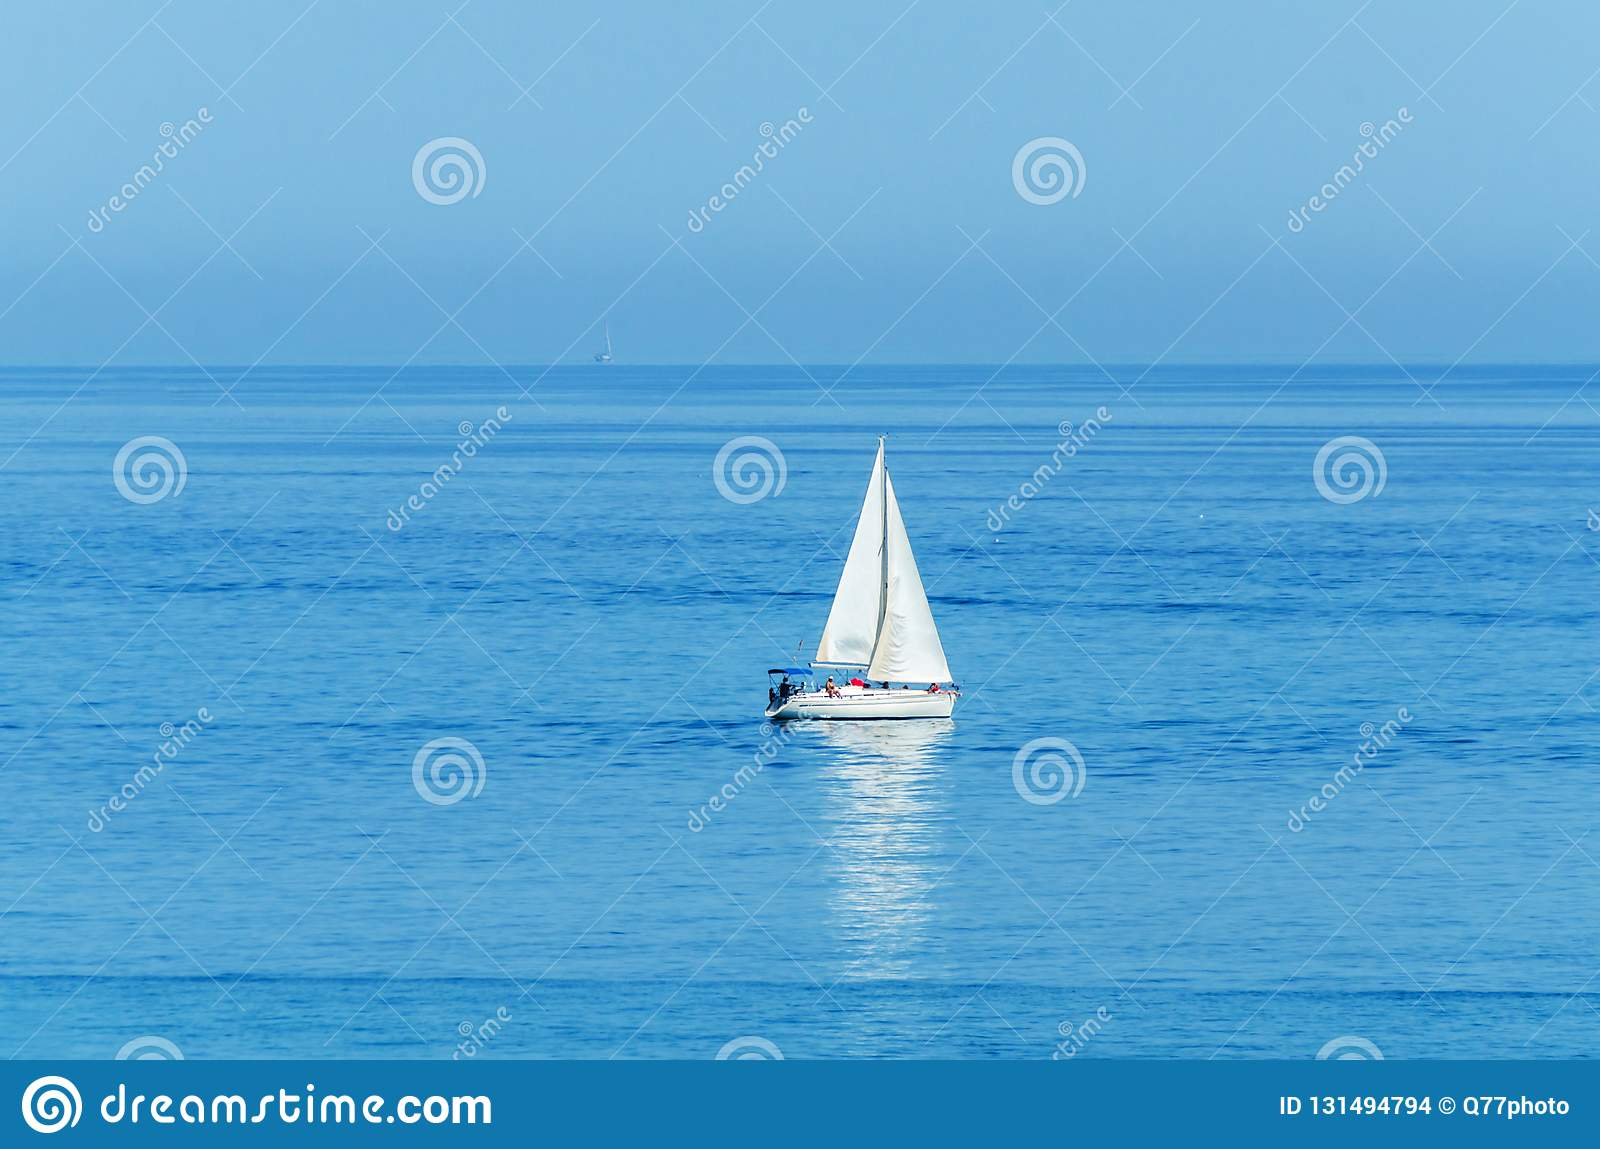 Yacht sailing the sea, clear sky and blue water, recreational sport, active rest